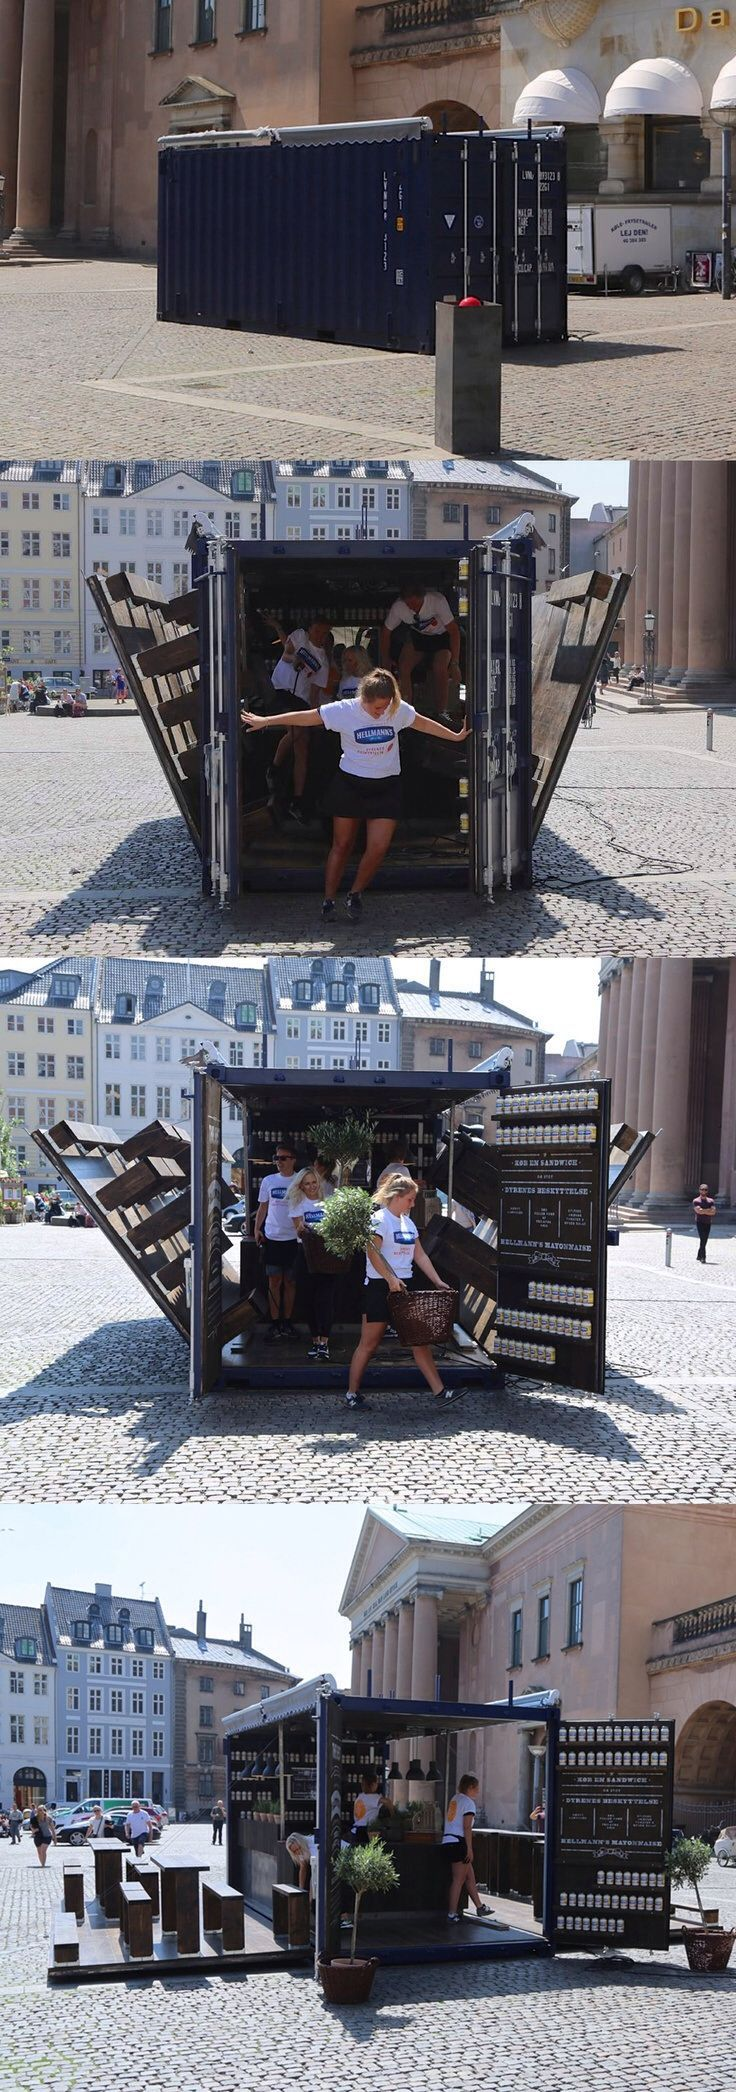 Container restaurant in Denmark. The beauty and portability of a true pop-up restaurant! PopUp Republic